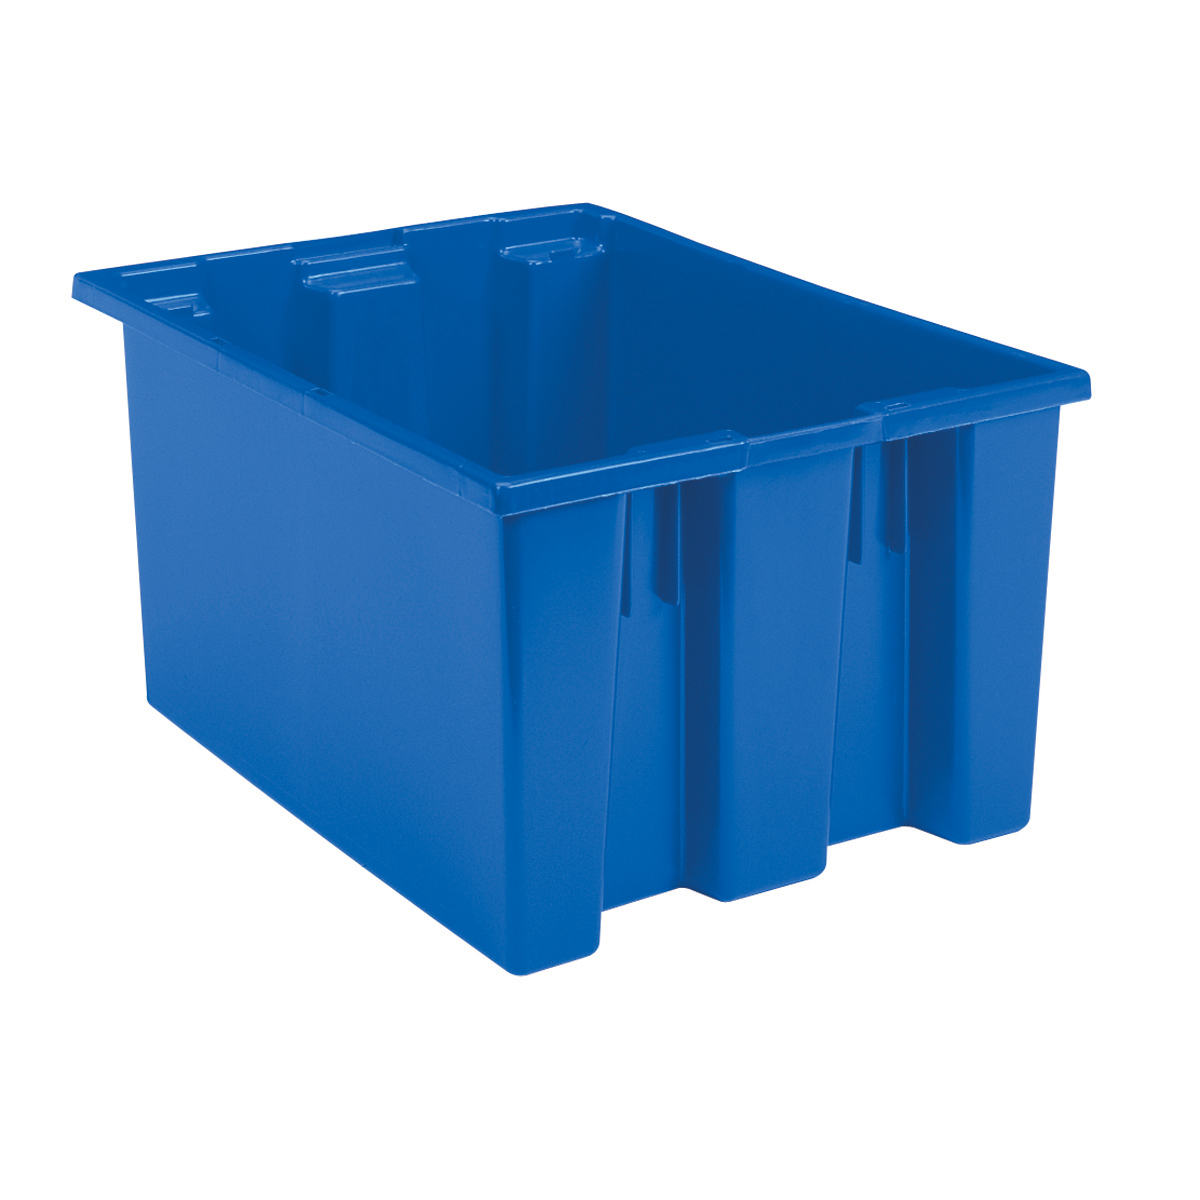 Nest & Stack Tote 23-1/2 x 19-1/2 x 13, Blue (35230BLUE).  This item sold in carton quantities of 3.